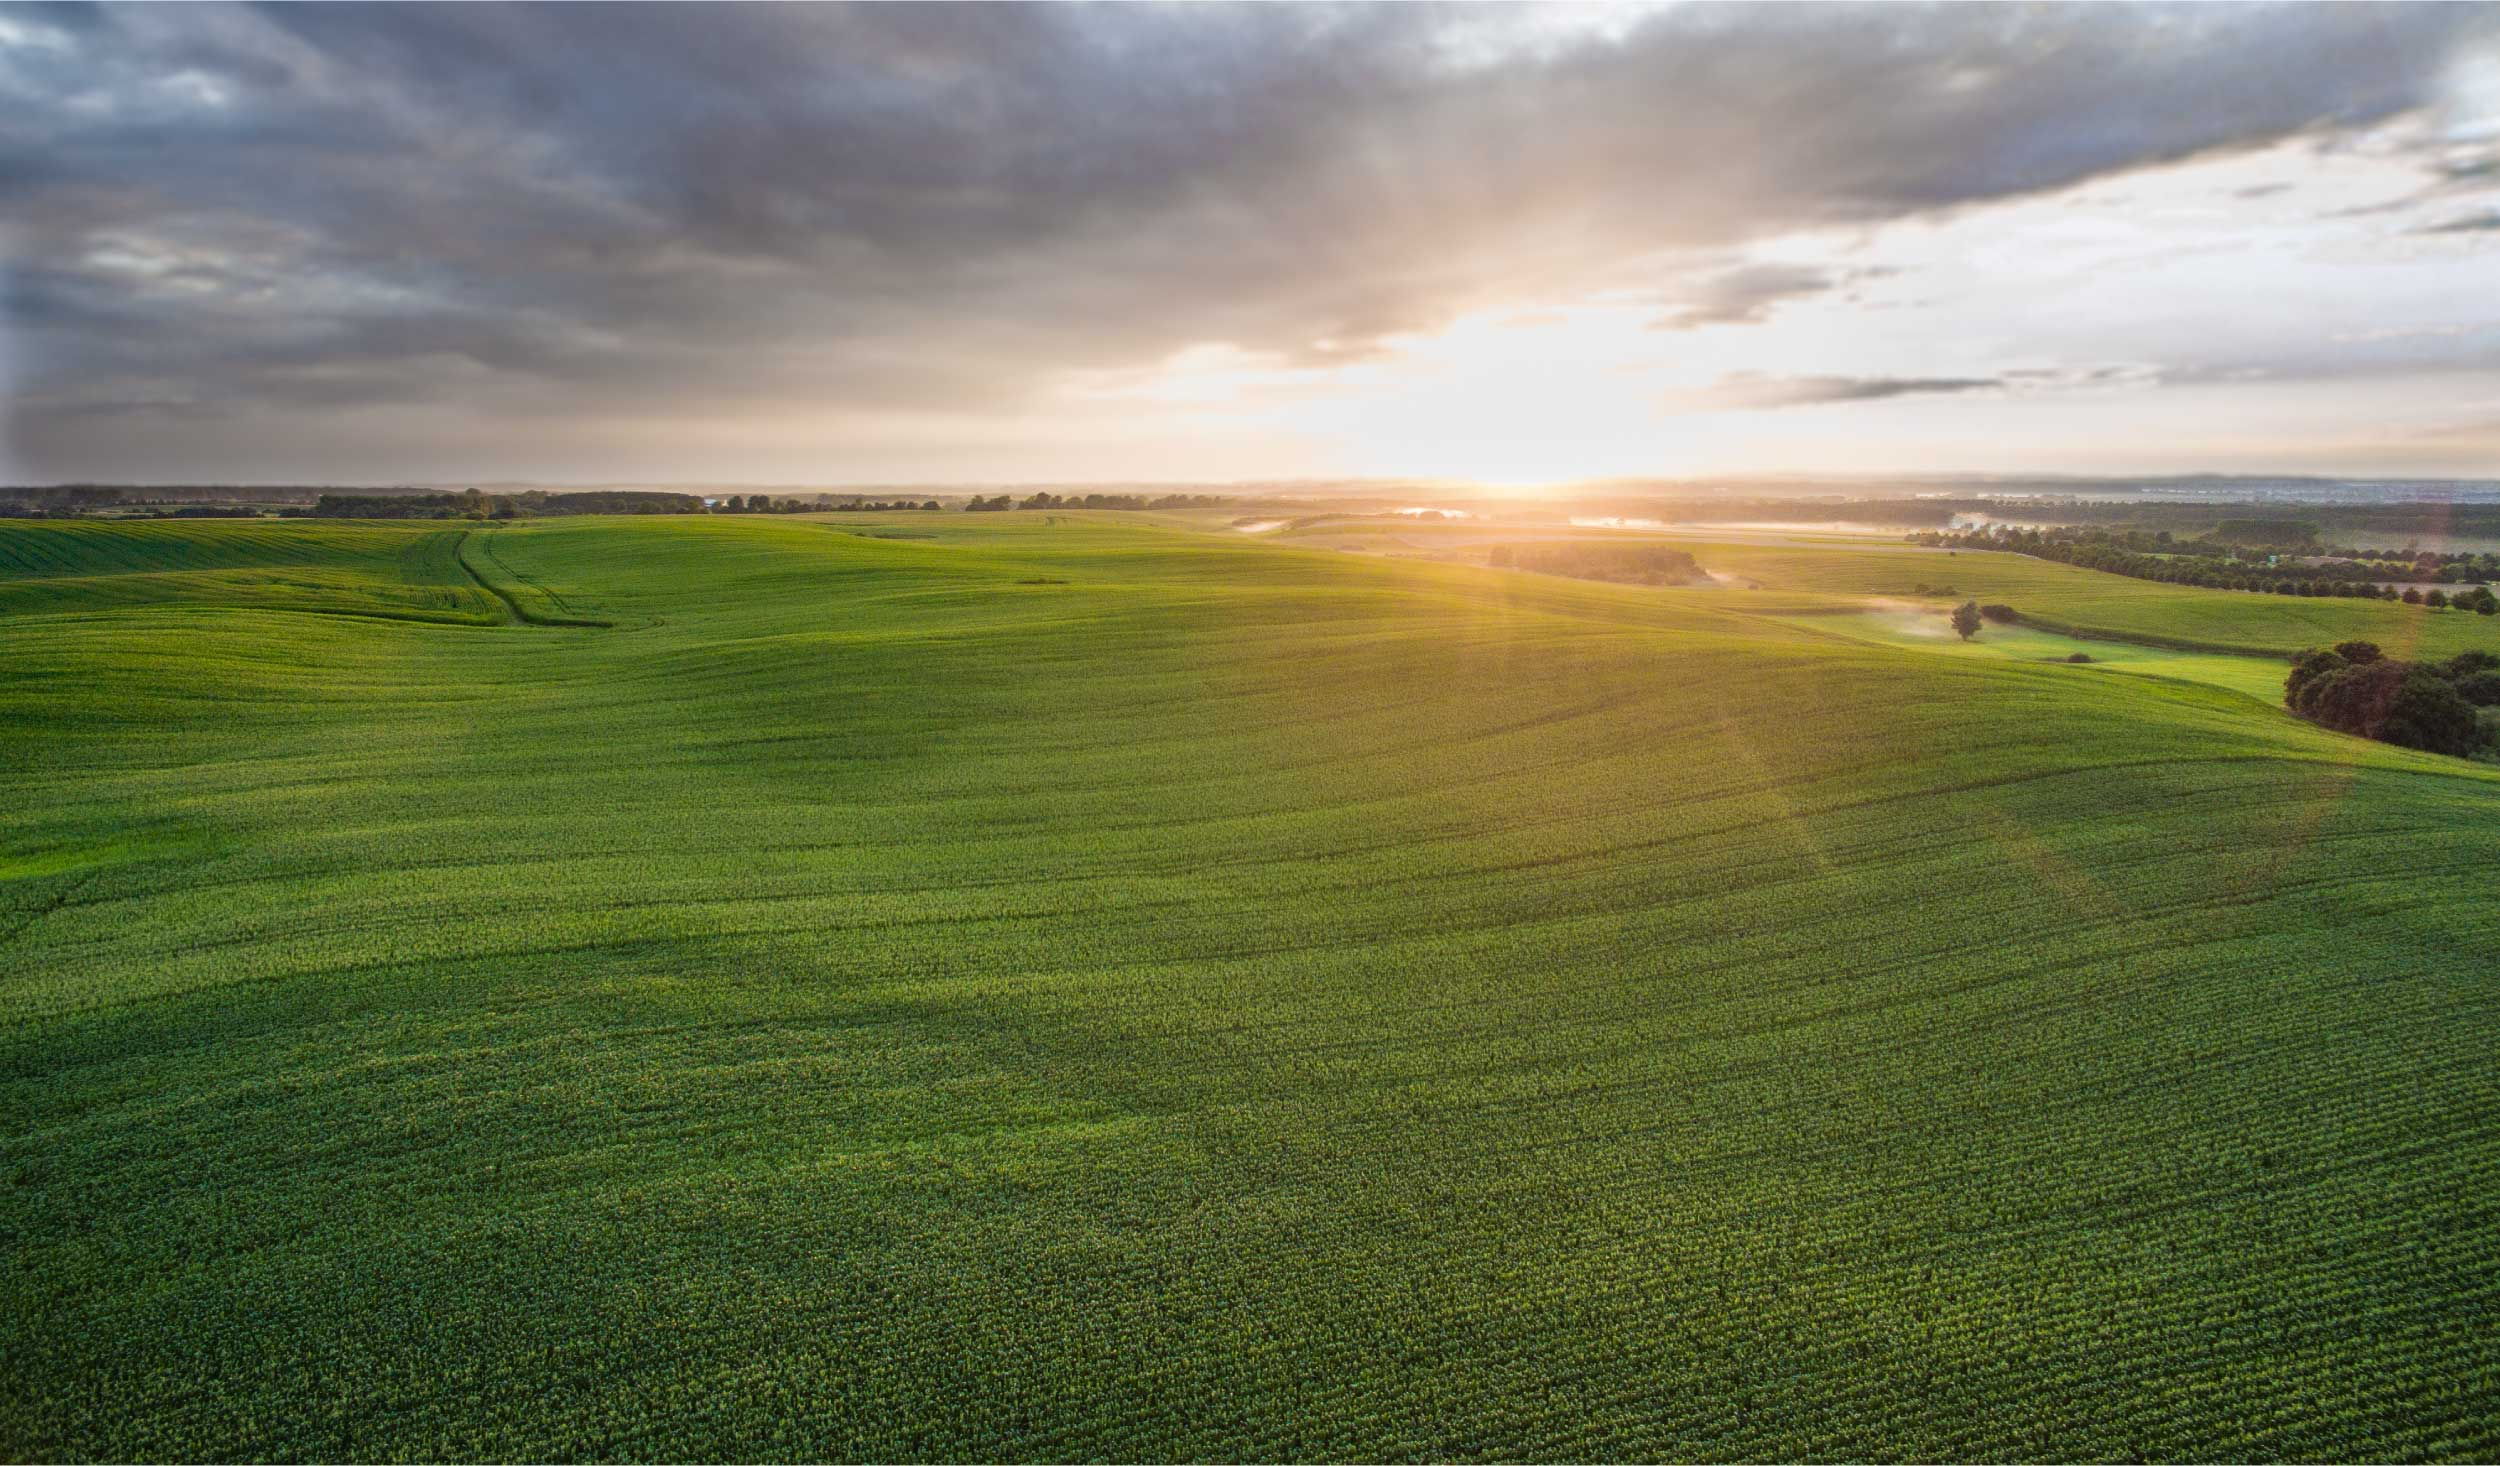 landscape aerial view of a field with the rising sun